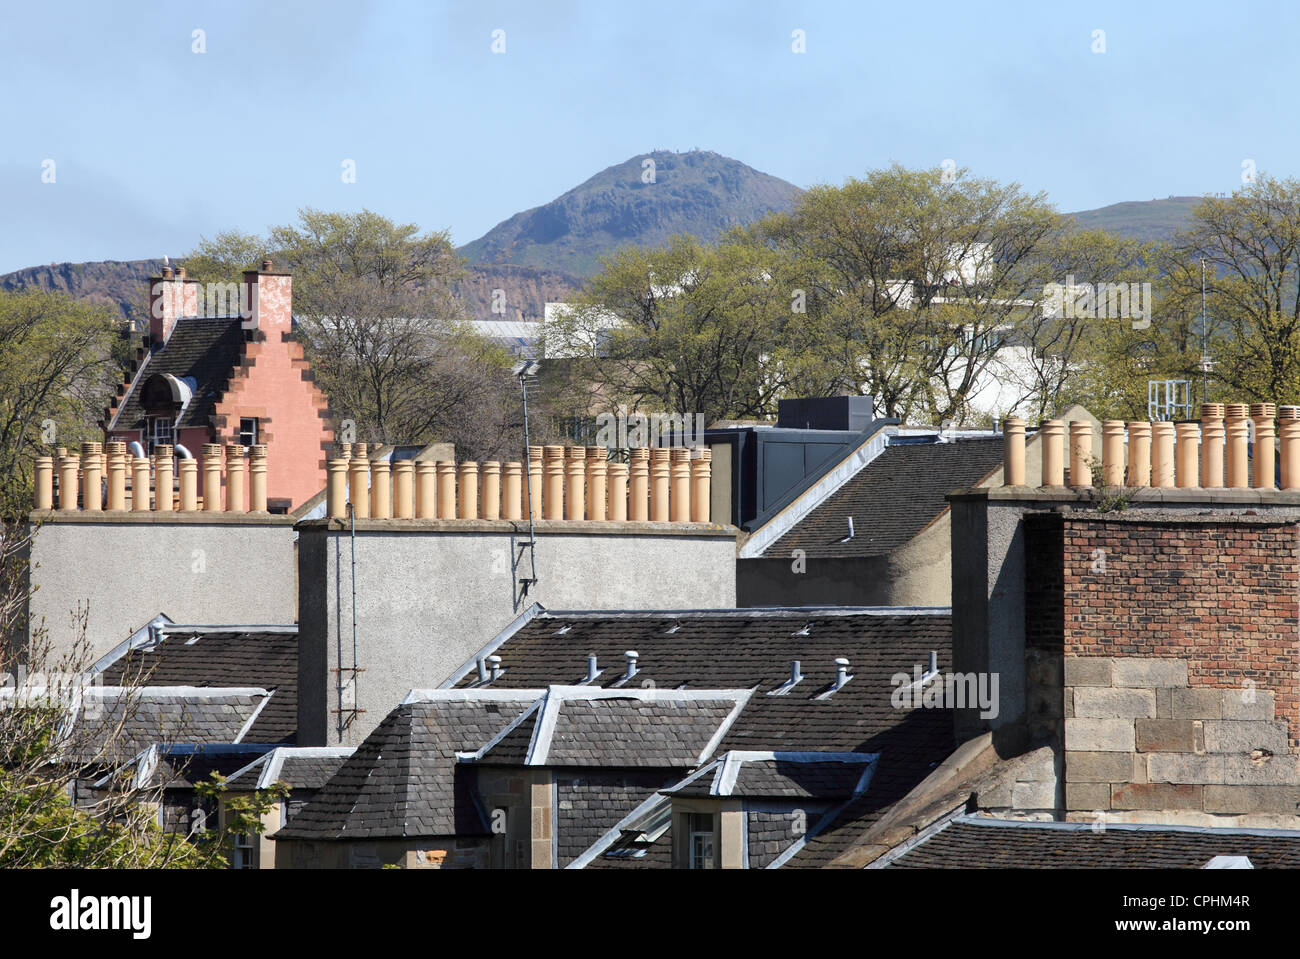 View of Arthur's Seat in the distance past rows of chimney pots within Edinburgh Scotland UK - Stock Image